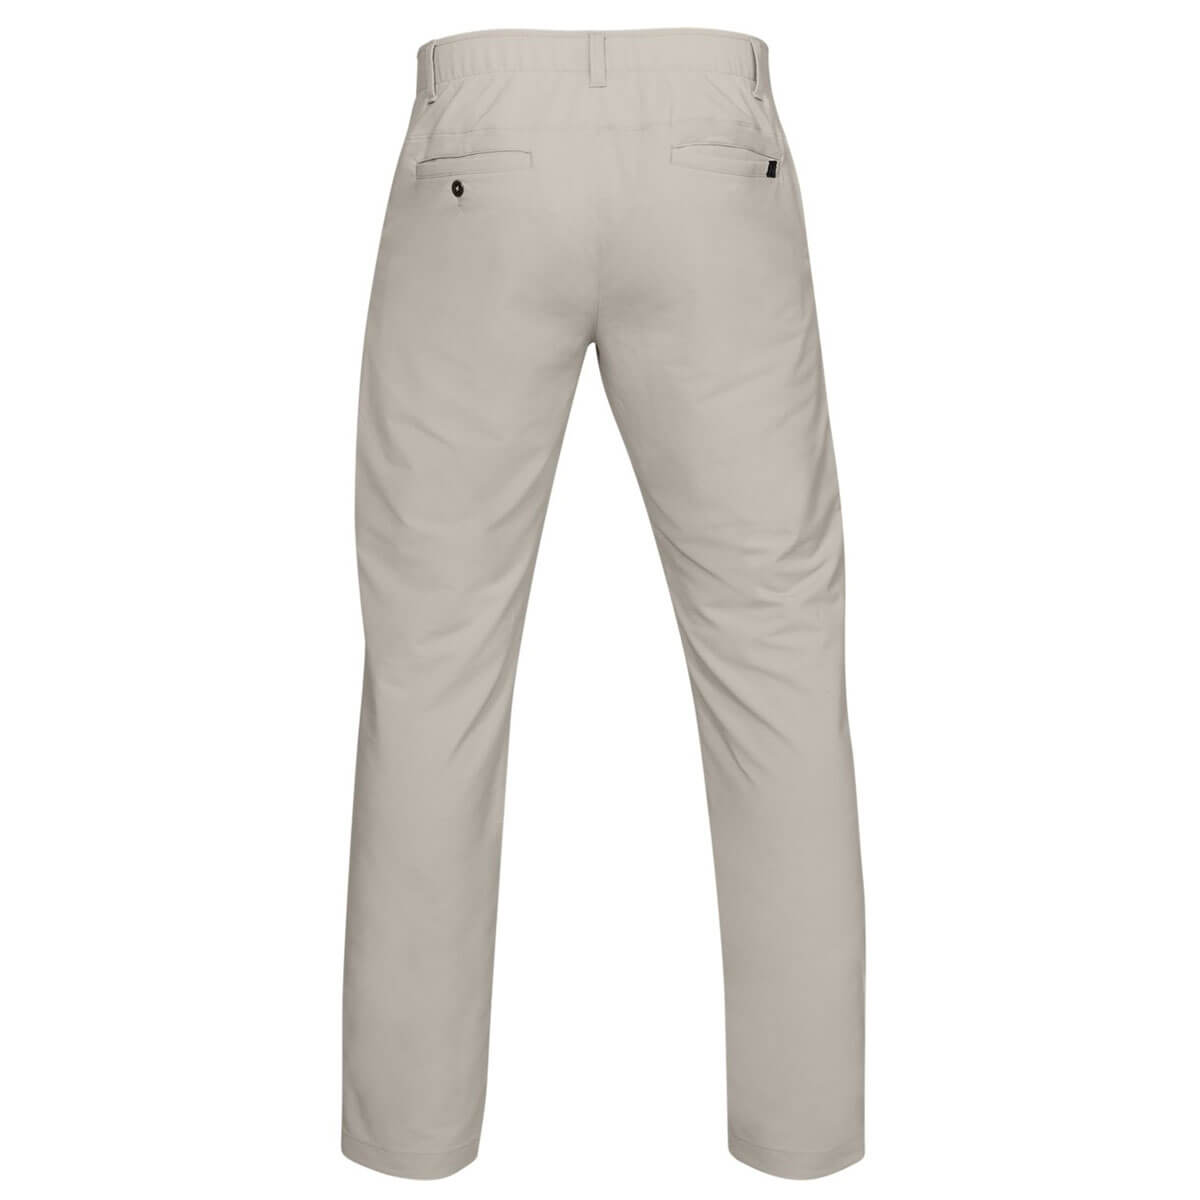 Under-Armour-Mens-2019-EU-Performance-Slim-Taper-Soft-Stretch-Golf-Trousers thumbnail 13